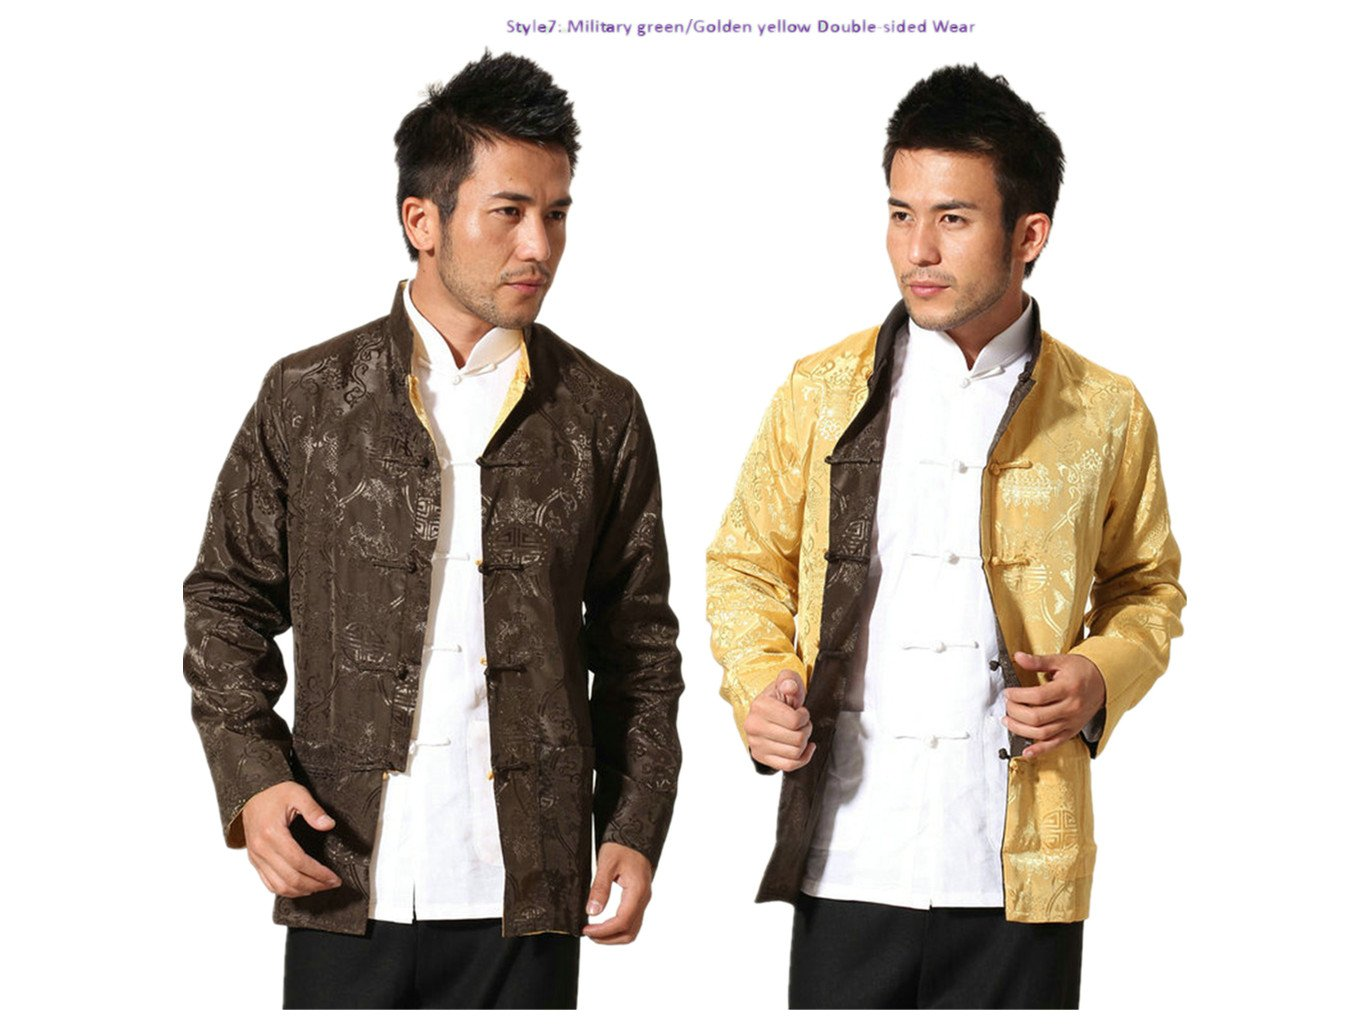 Brocade Silk Tang Suits Double-sided Wear Retro Jackets Coats Business Jackets Full Dress by Double-sided Wear Tang Suit